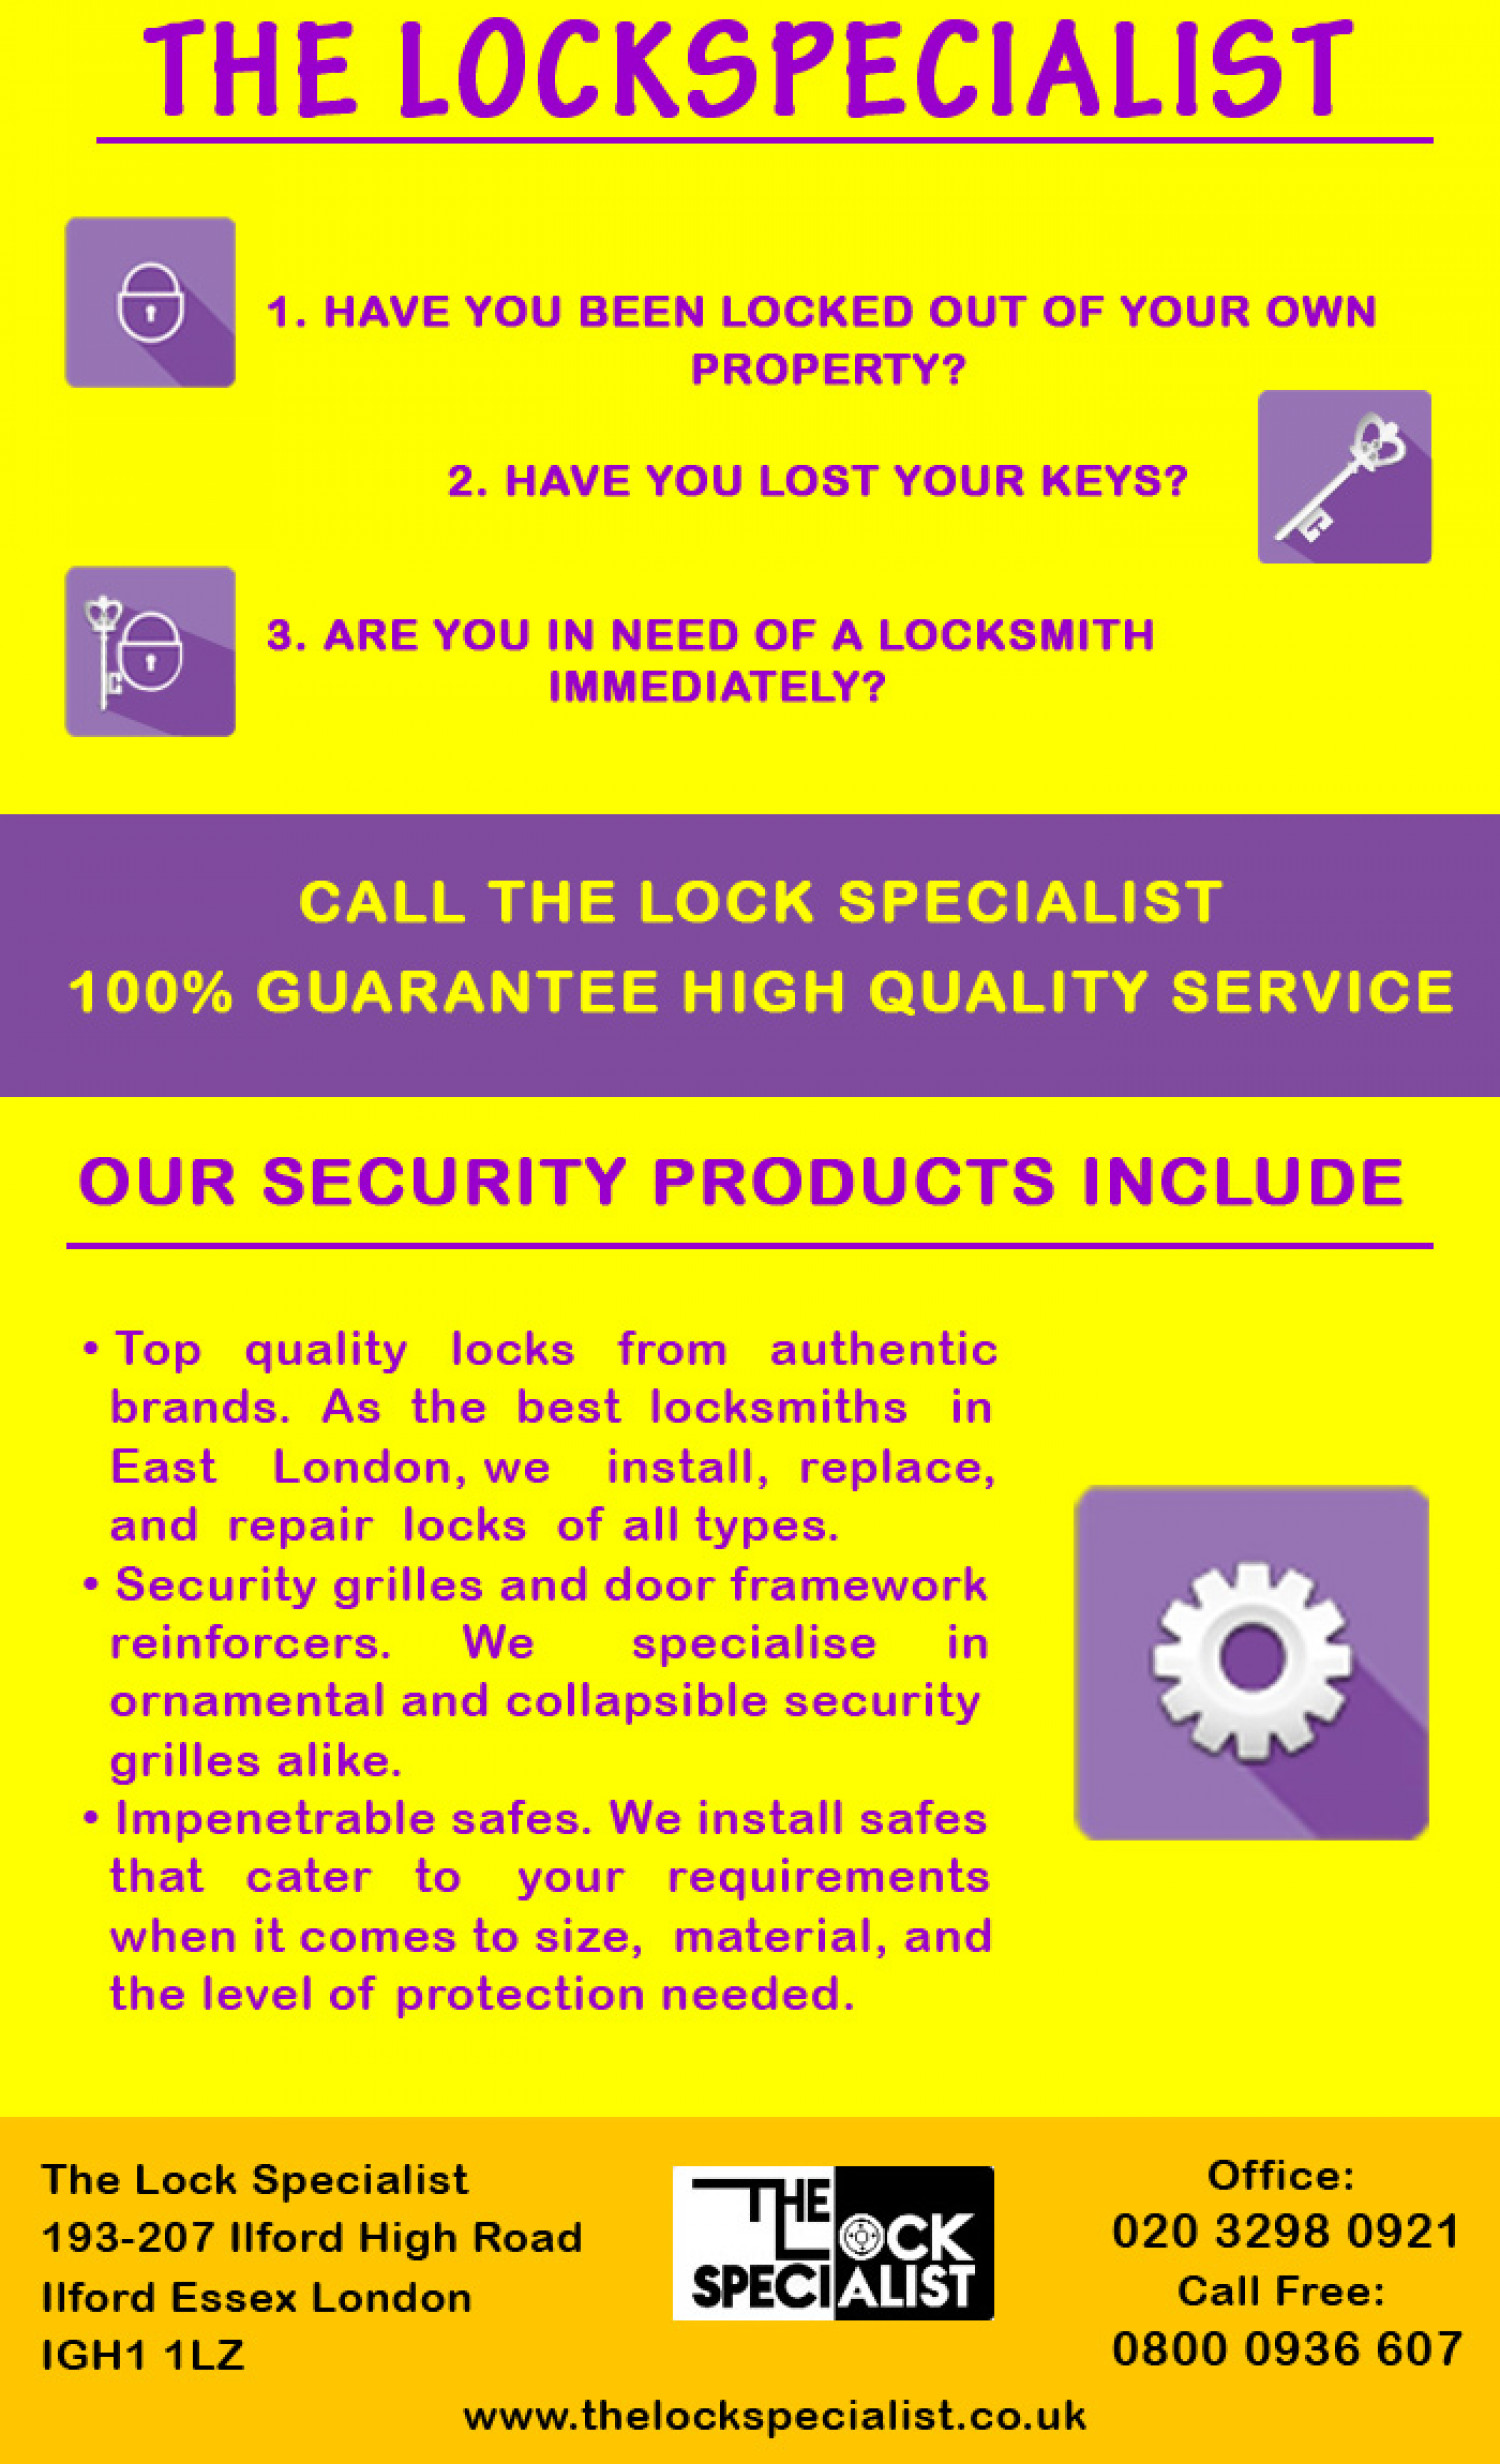 The Lockspecialist Infographic